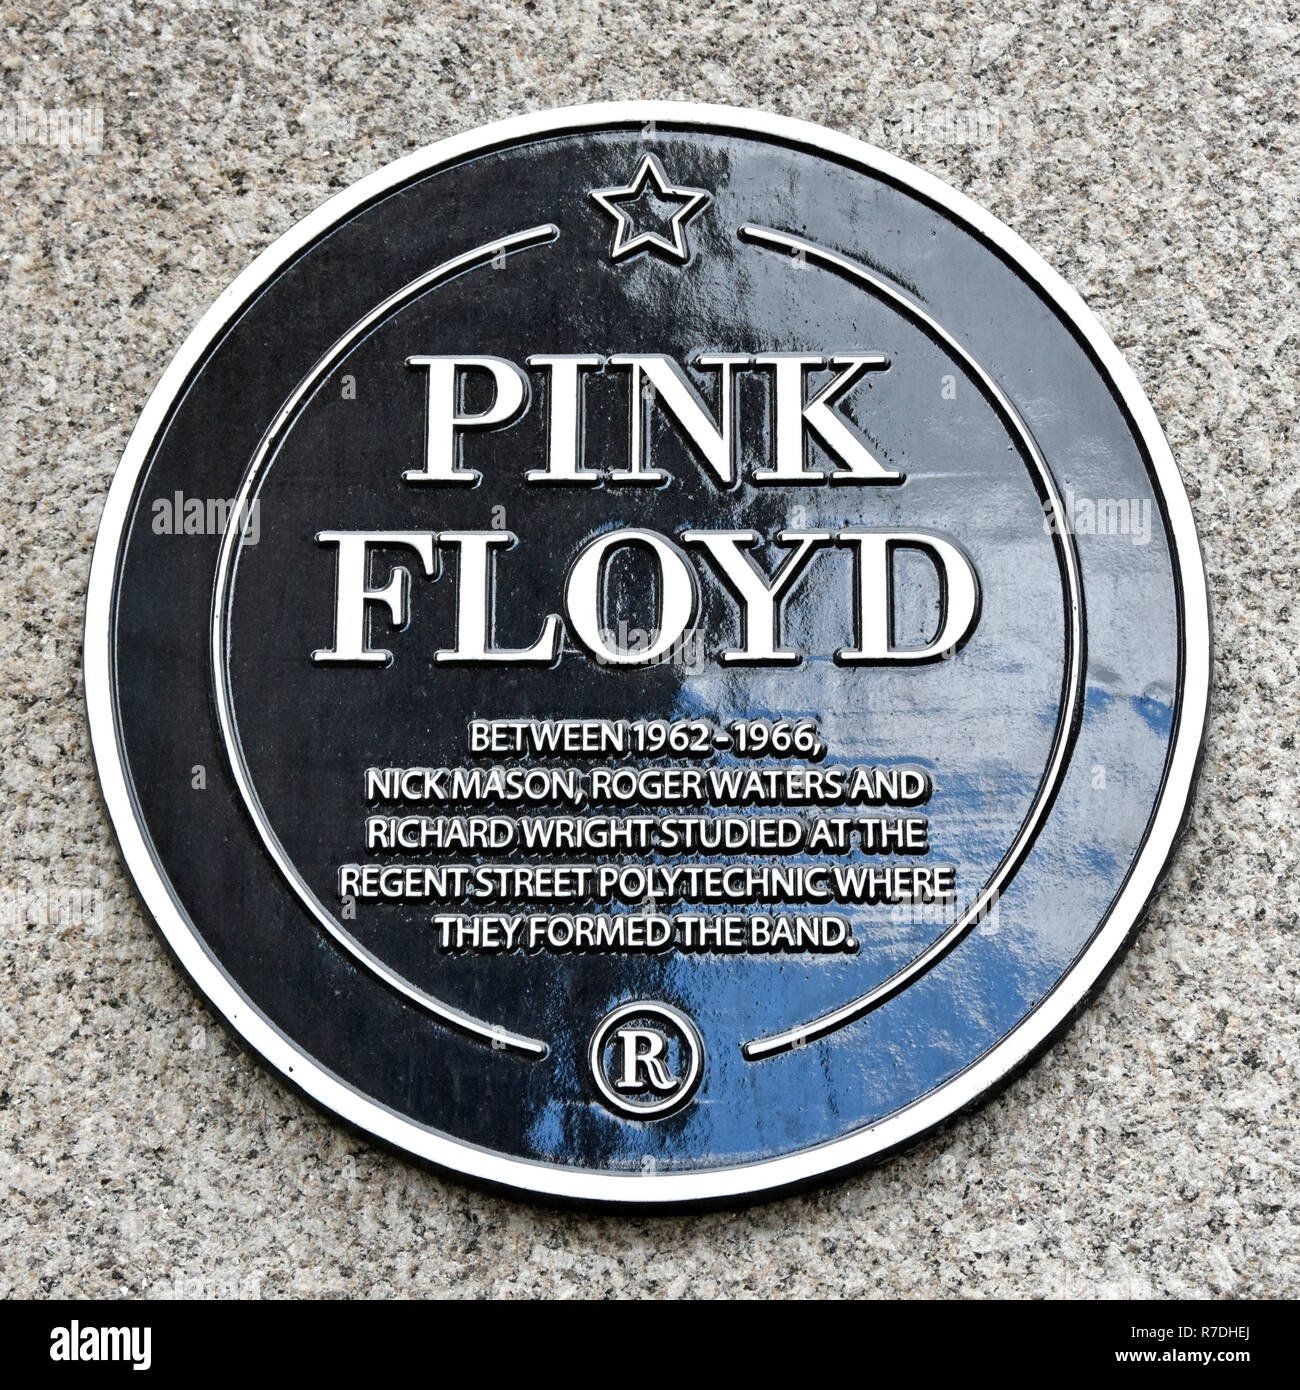 Pink Floyd English rock music band plaque on wall of Regent Street Polytechnic in London as students the group formed the band in 1960s England UK - Stock Image